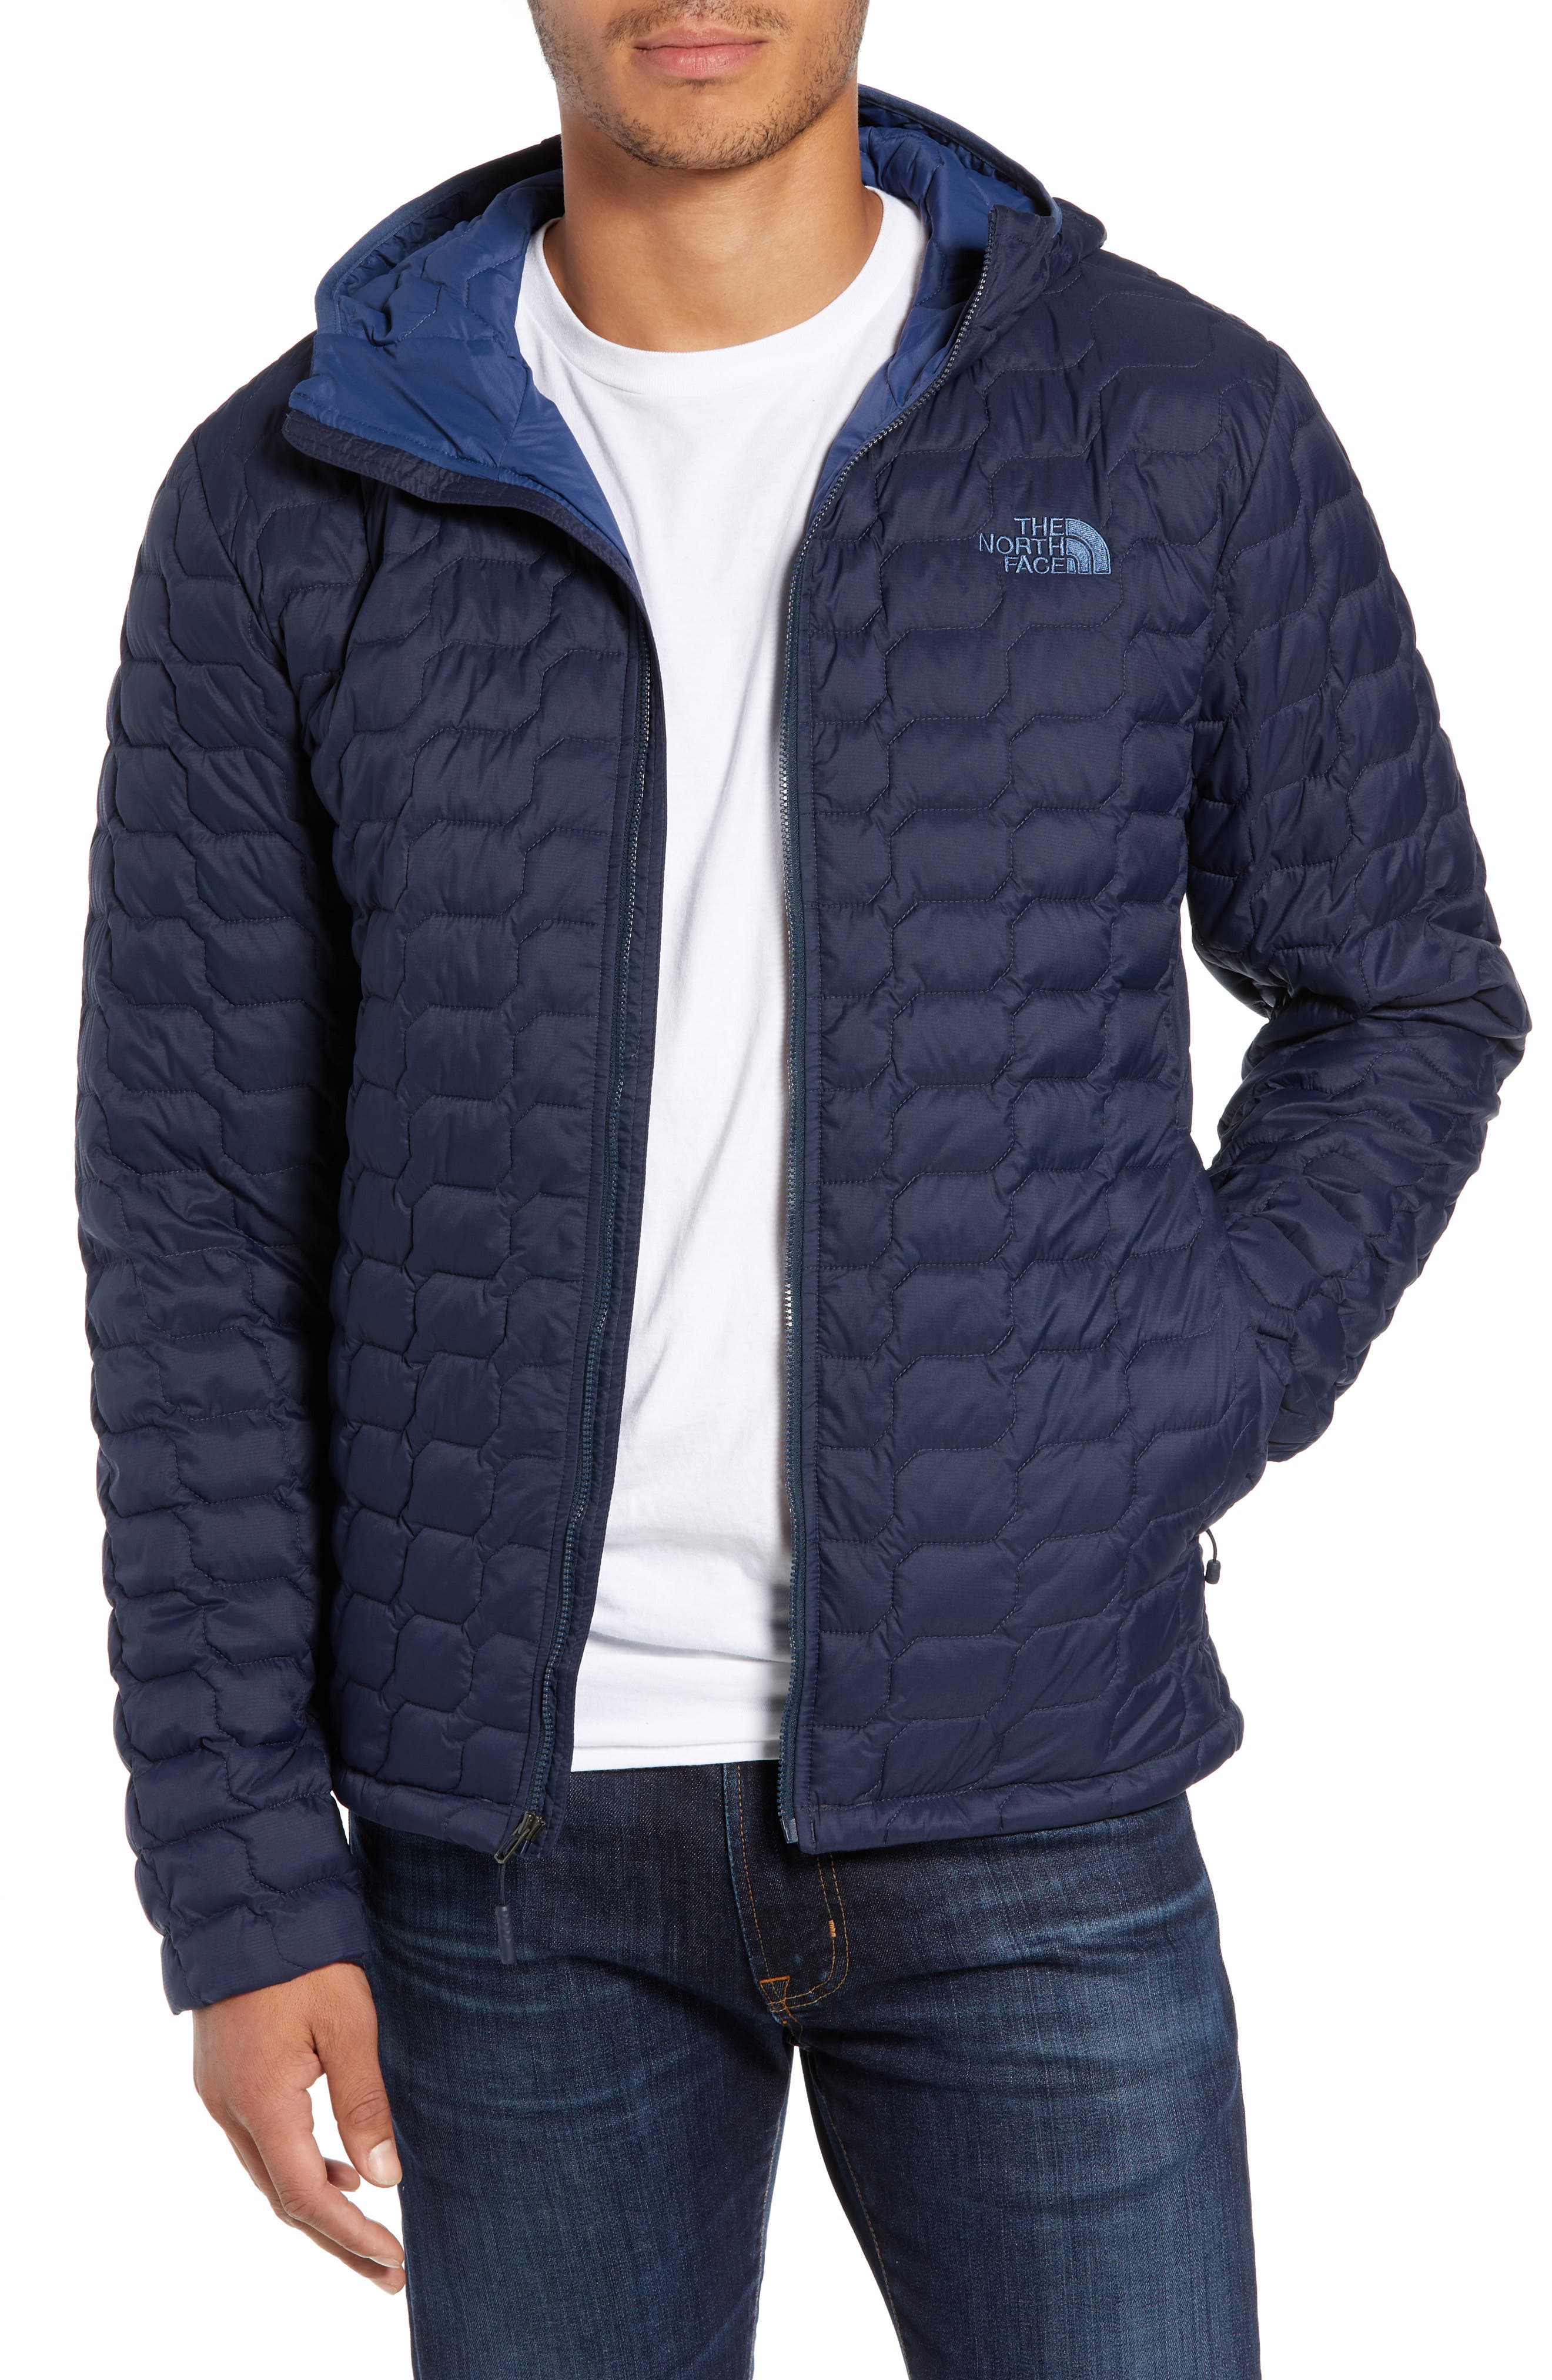 the north face men s jackets   gear nordstrom